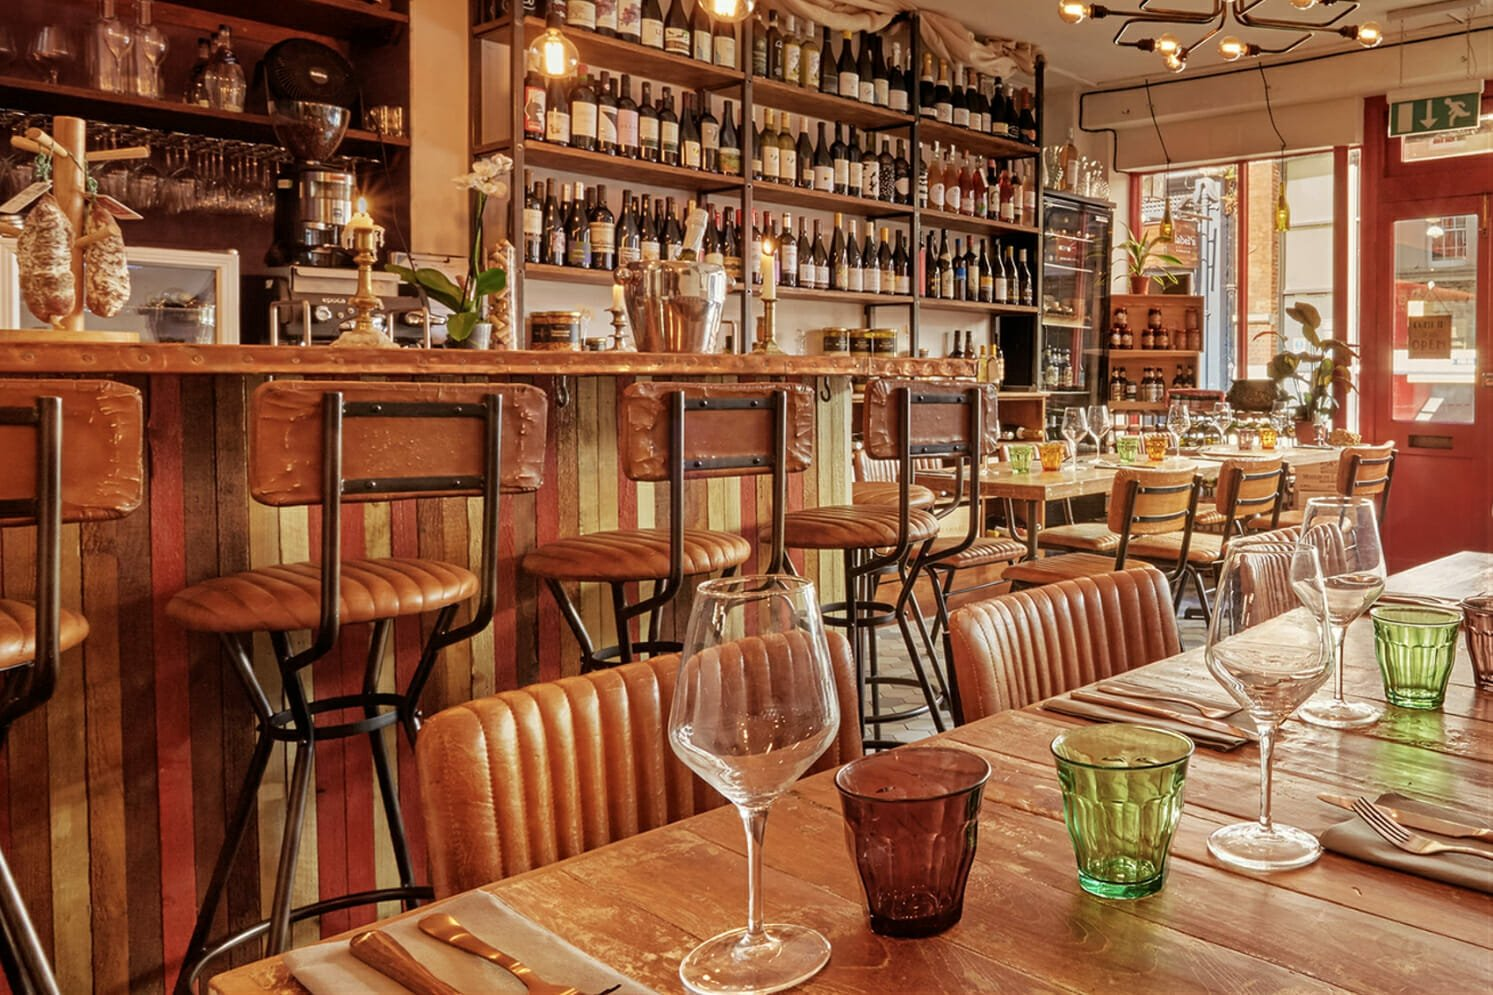 Lady of the Grapes best covent garden bars